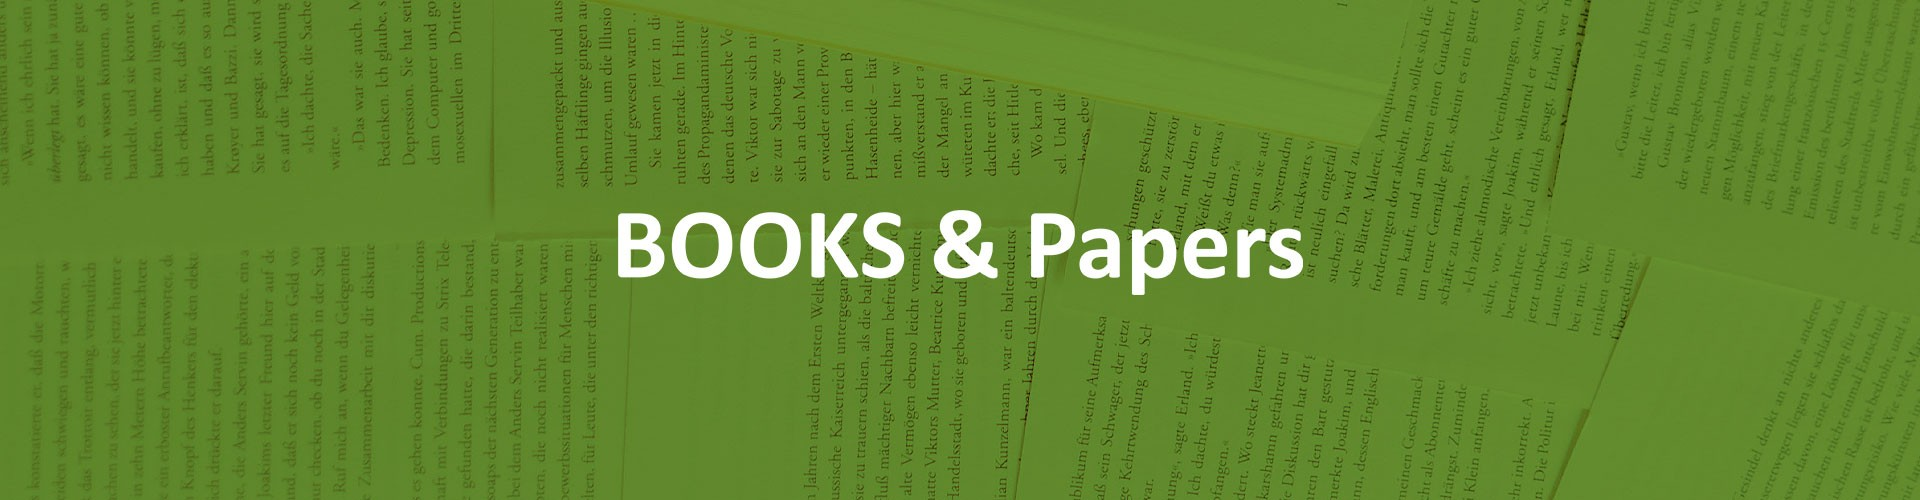 Book & Papers